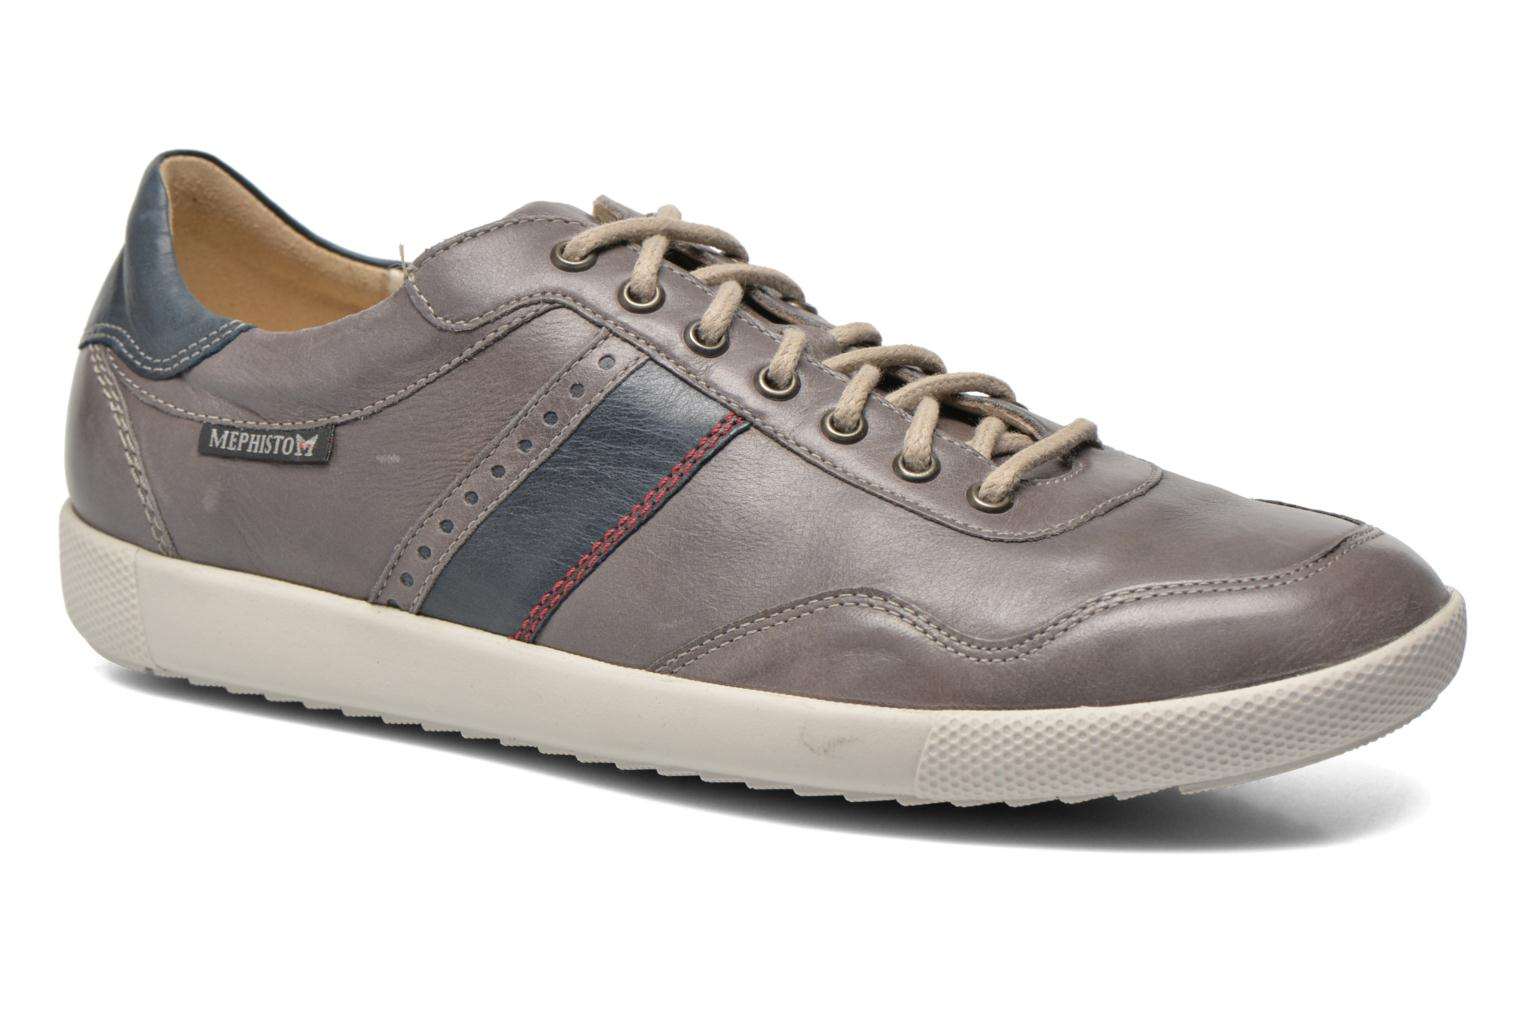 Sneakers URBAN by Mephisto